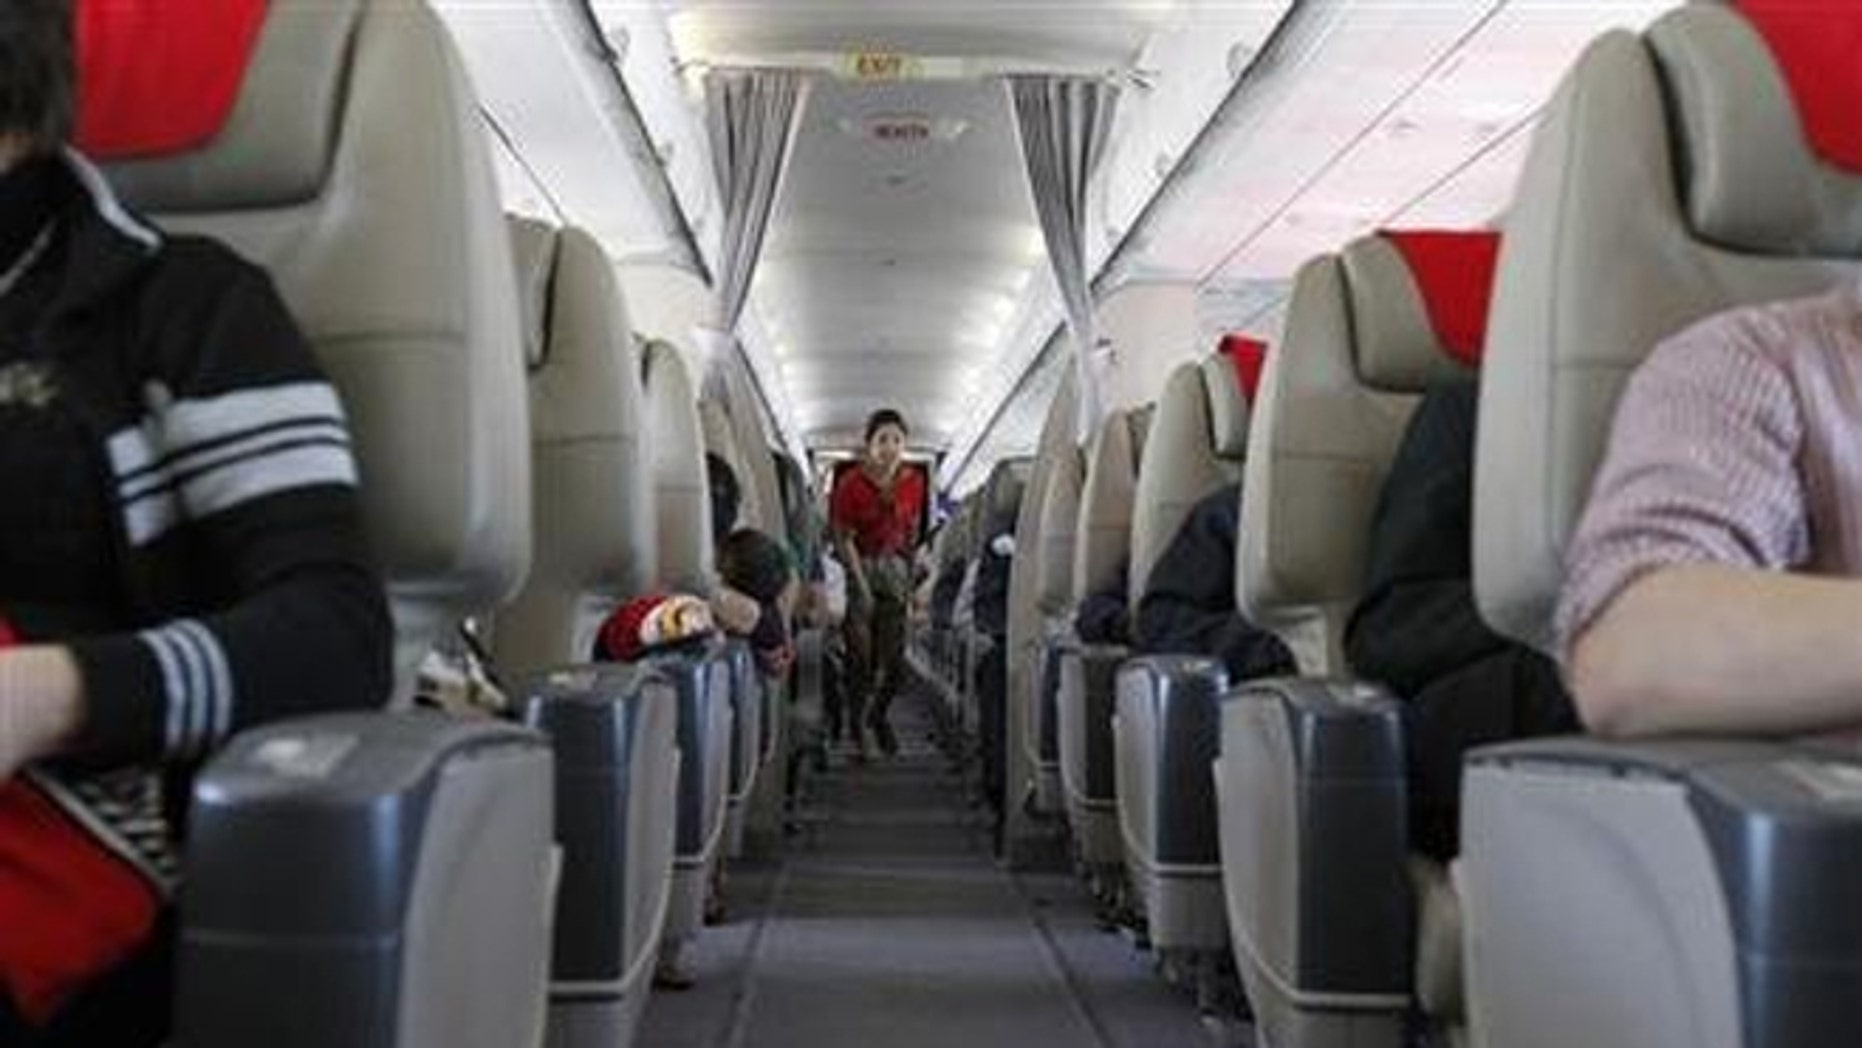 With preferred seats harder to get, passengers are desperate enough to offer bribes to their fellow fliers.